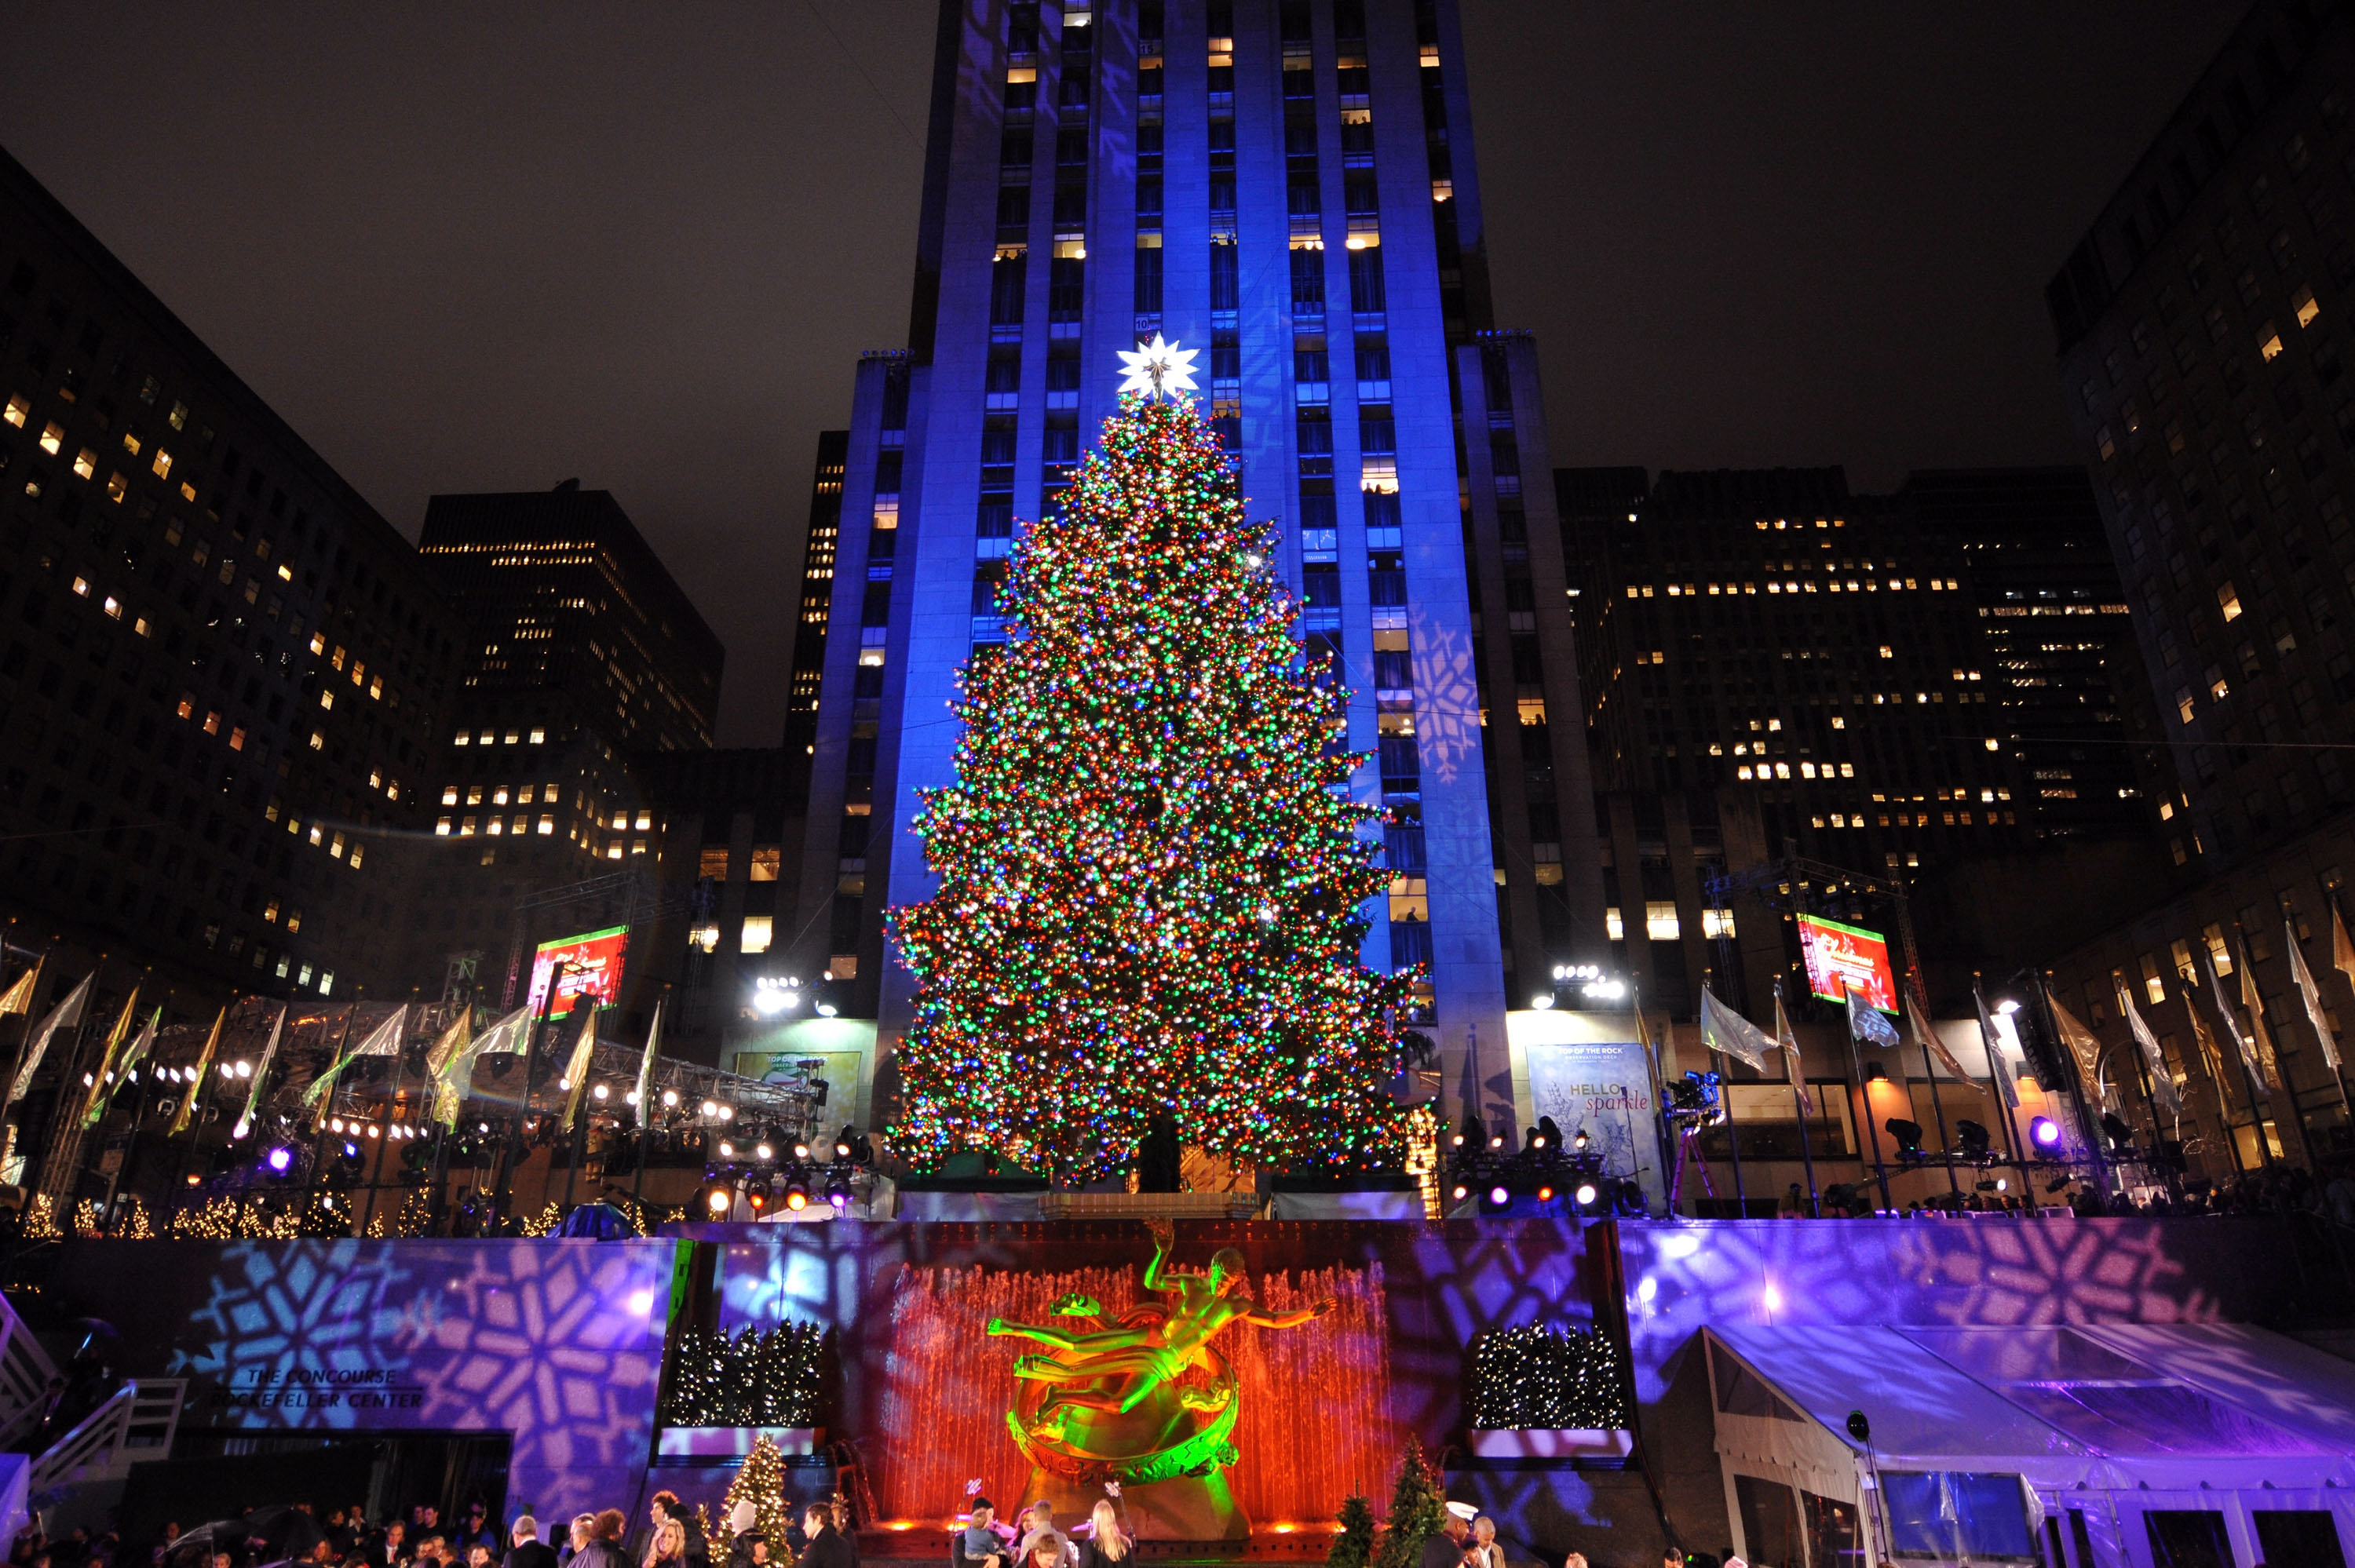 Rockefeller Christmas Tree 2019.The Rockefeller Center Christmas Tree Is On Its Way Fortune